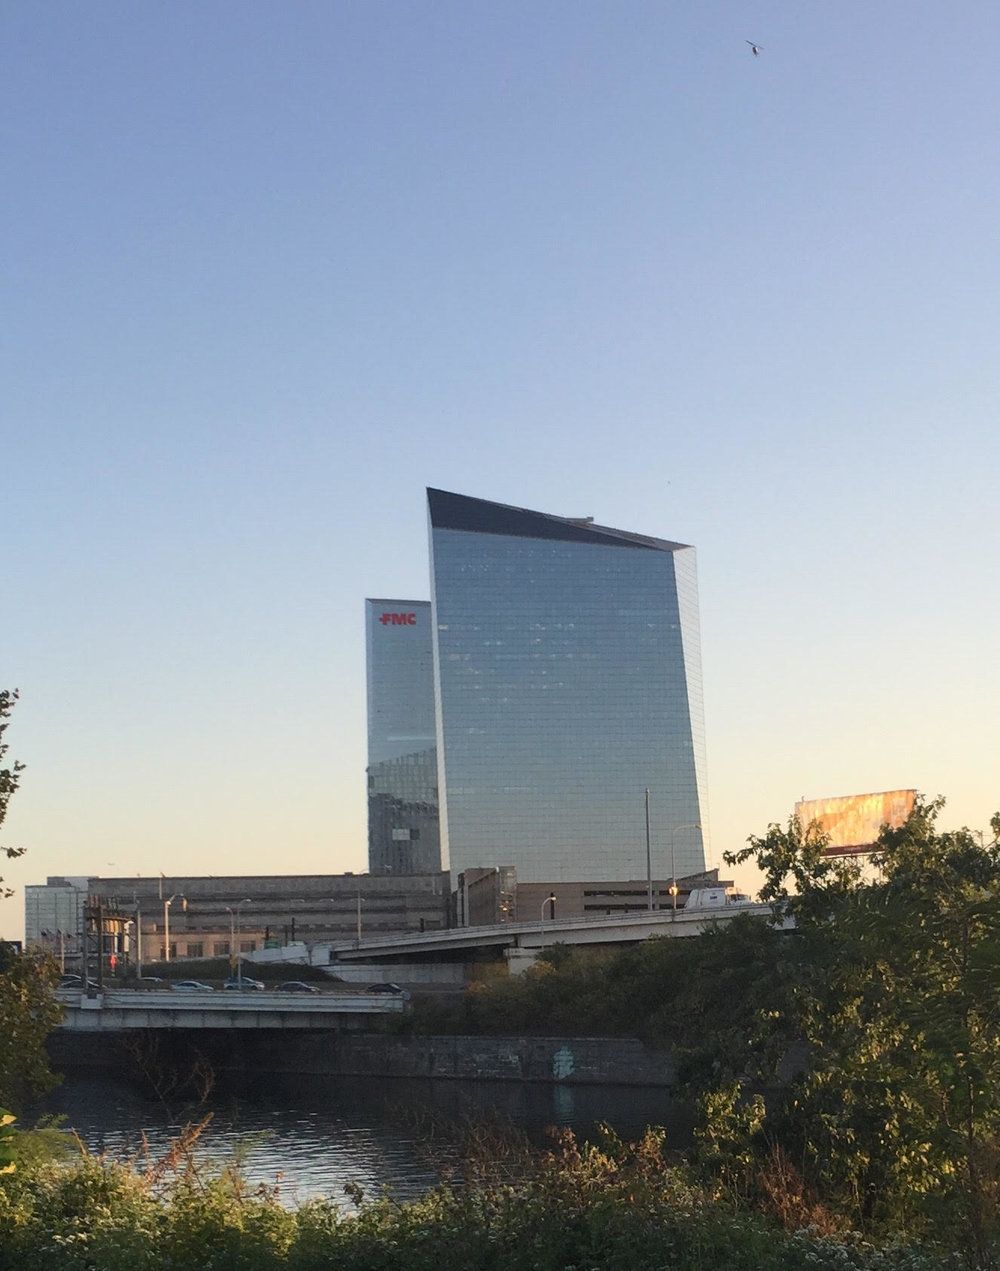 Cira Center - 90% of workers arrive by transit